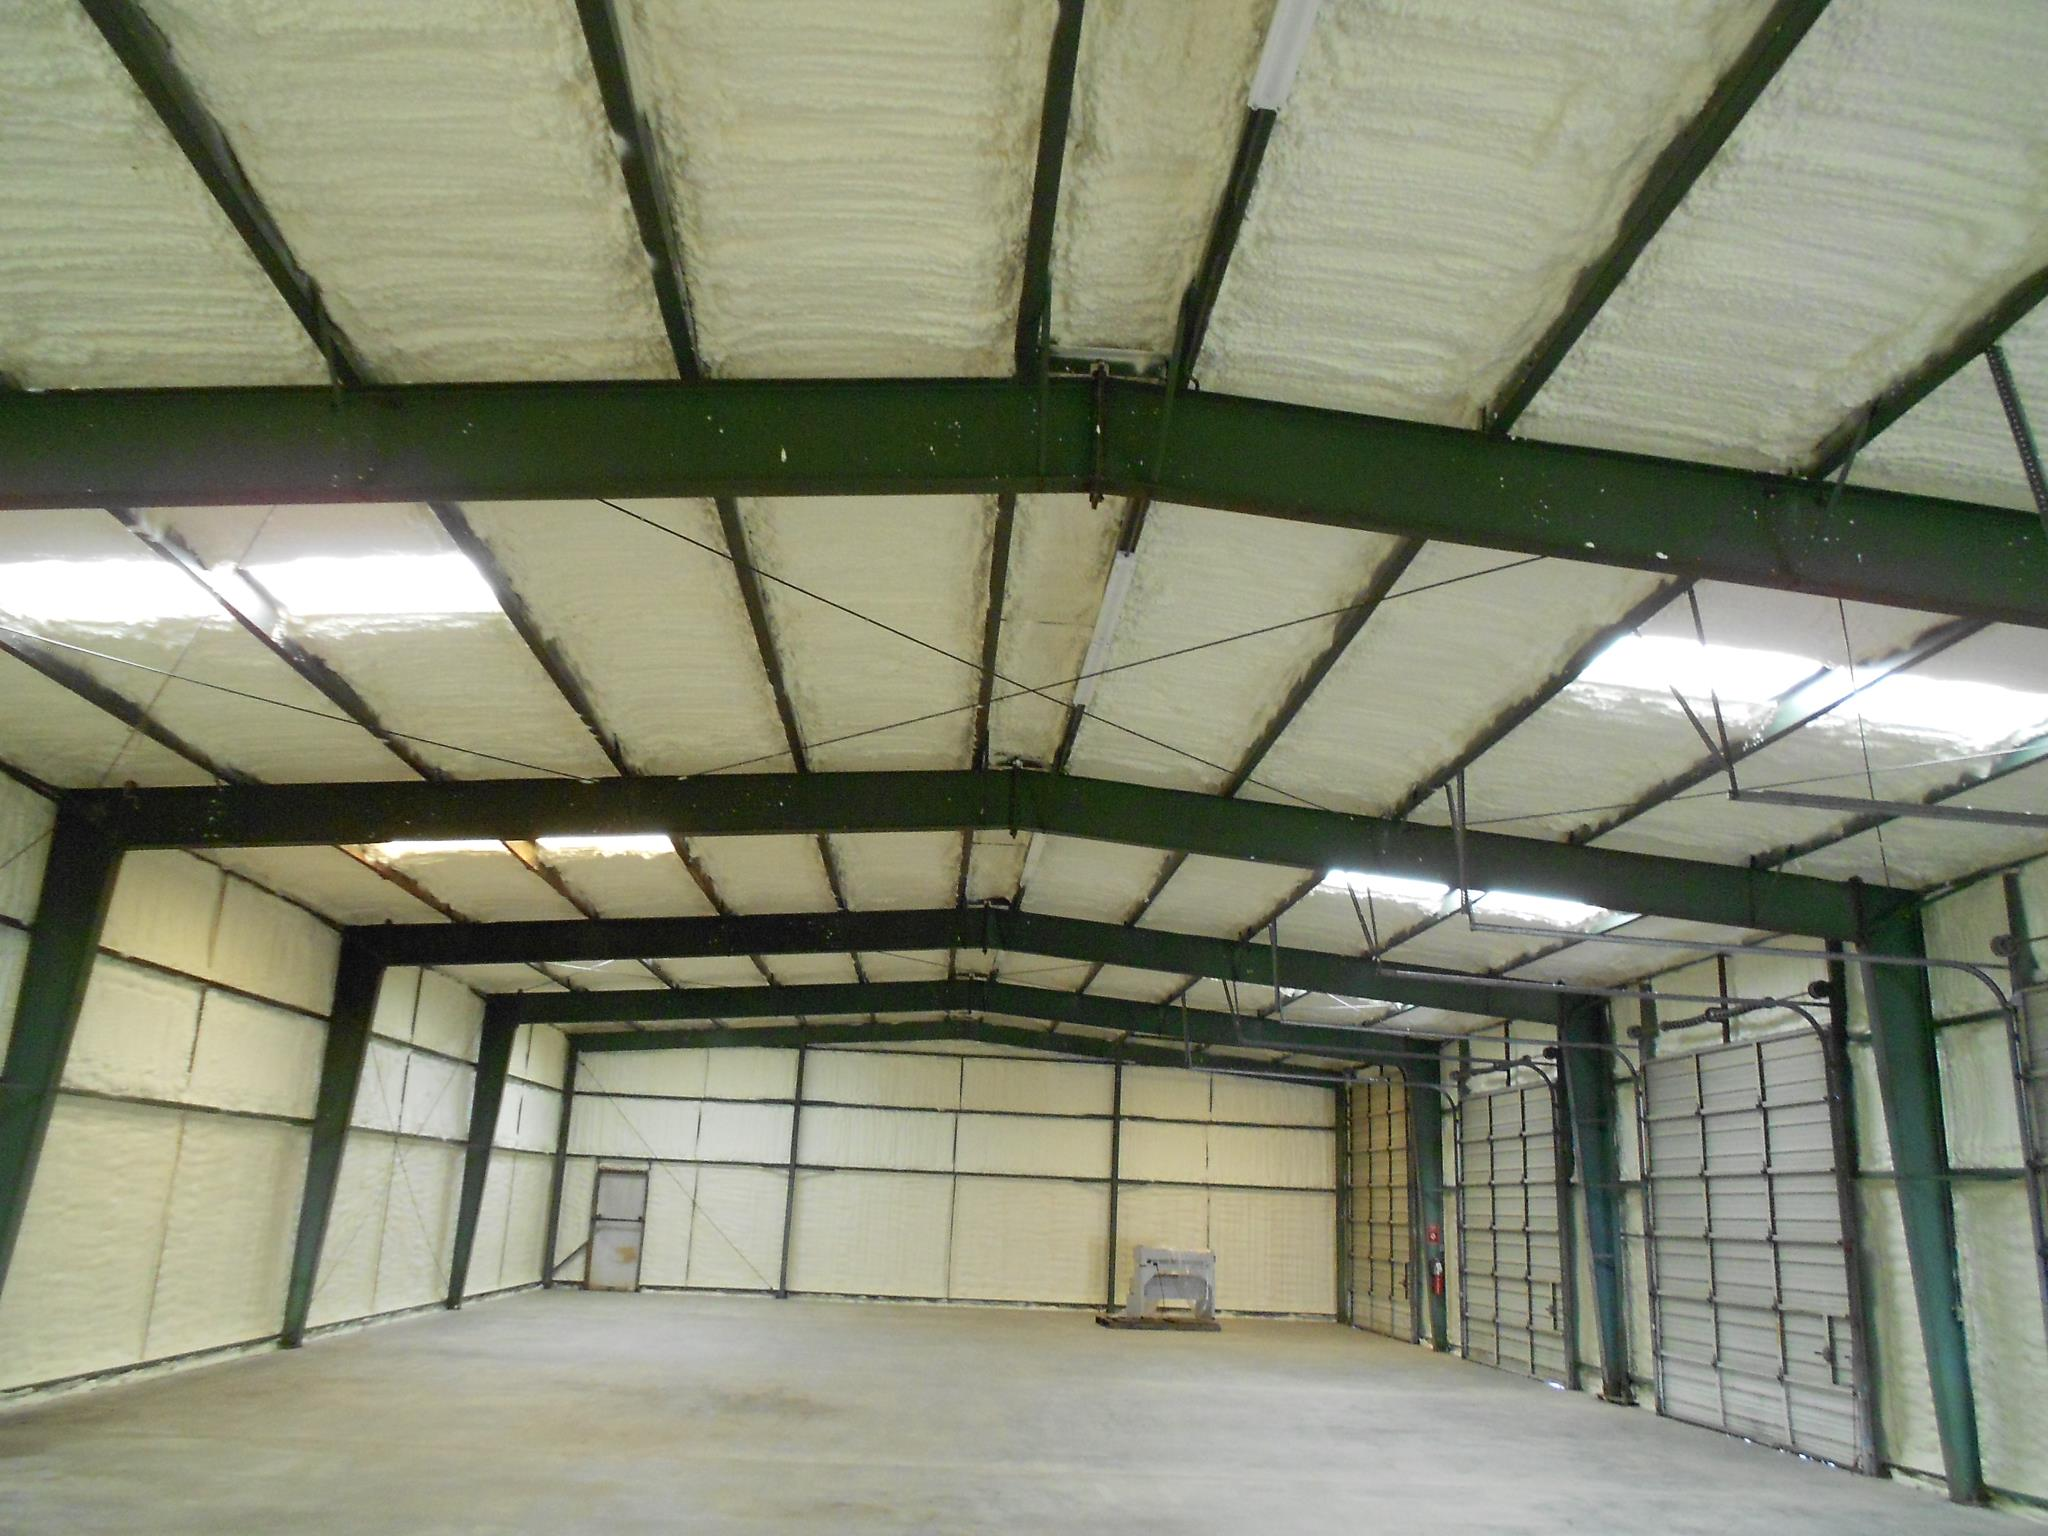 Foam Insulated Ceiling in Metal Buildings